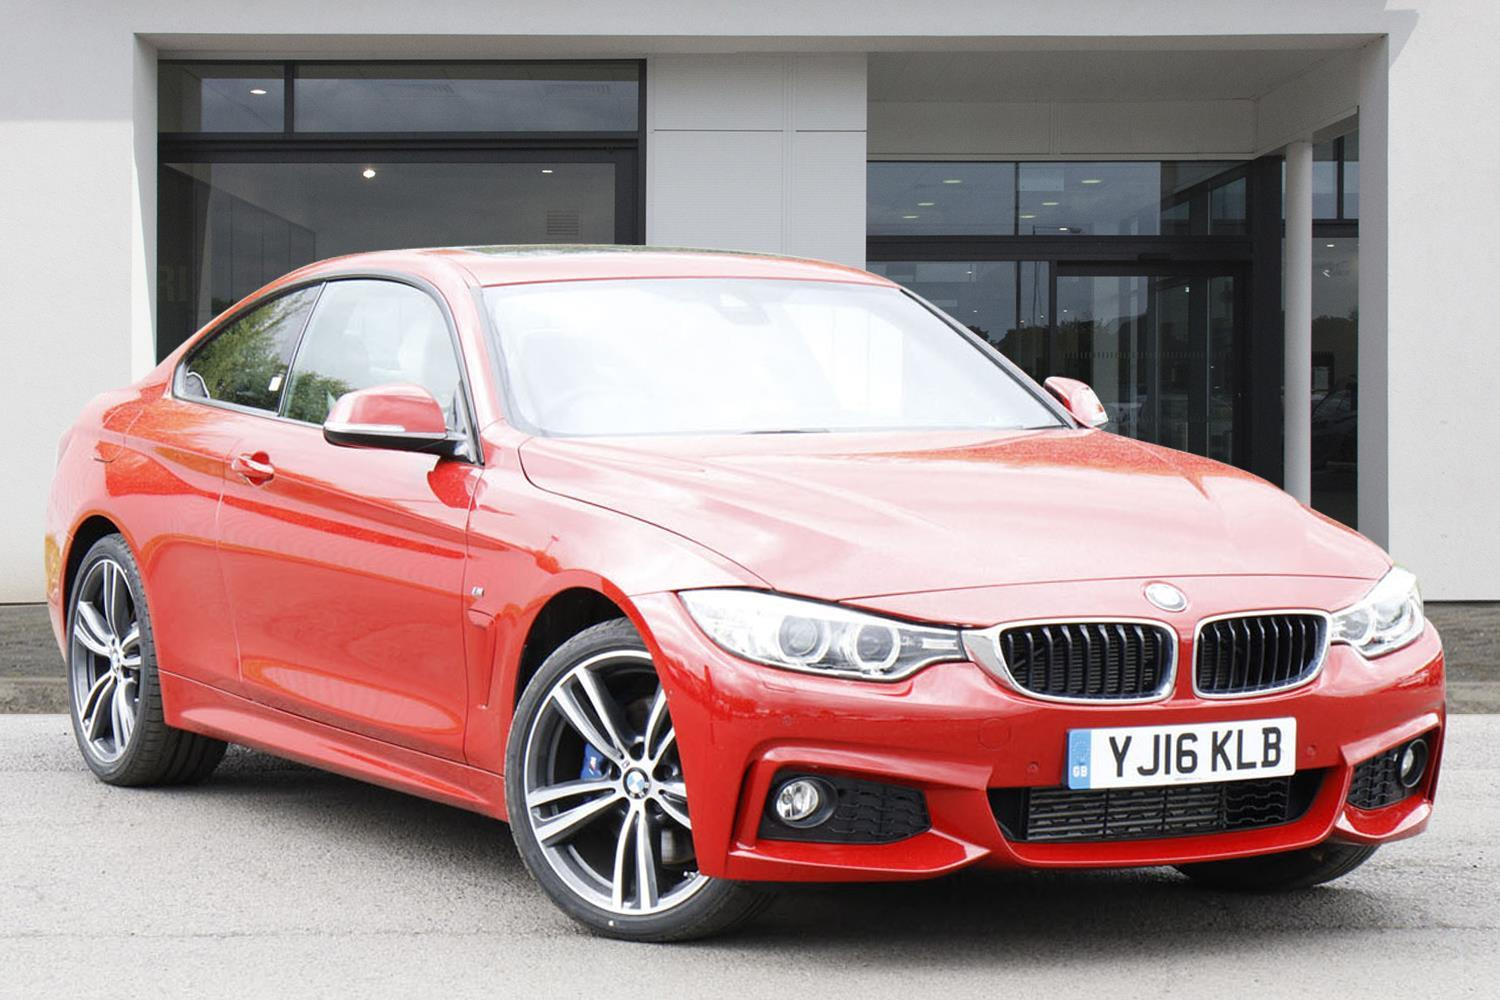 BMW 4 Series Coupé YJ16KLB - Image 3